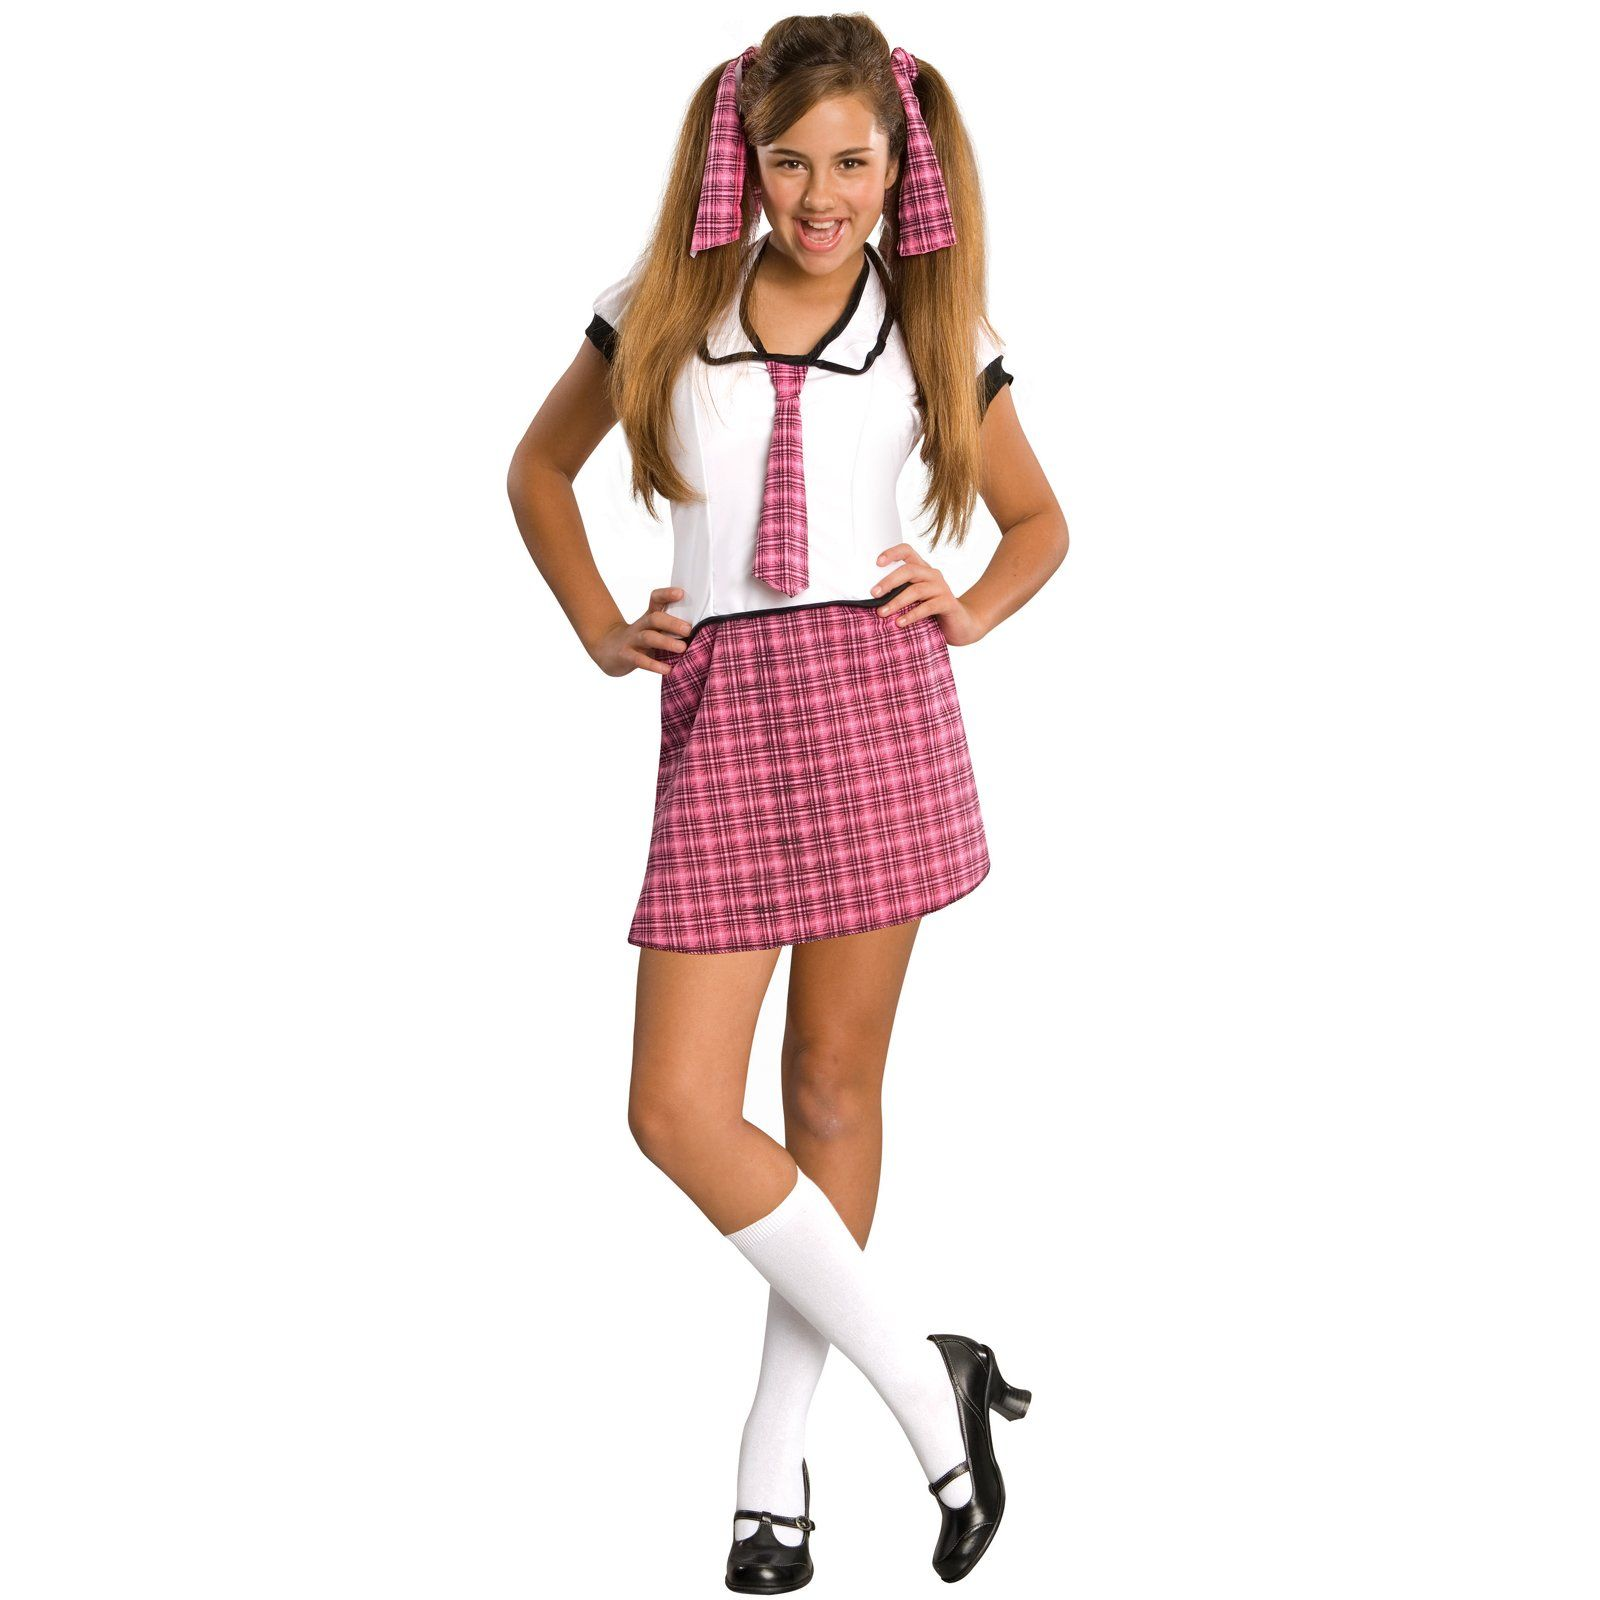 tween costumes for girls | cheap school girl tween costume at